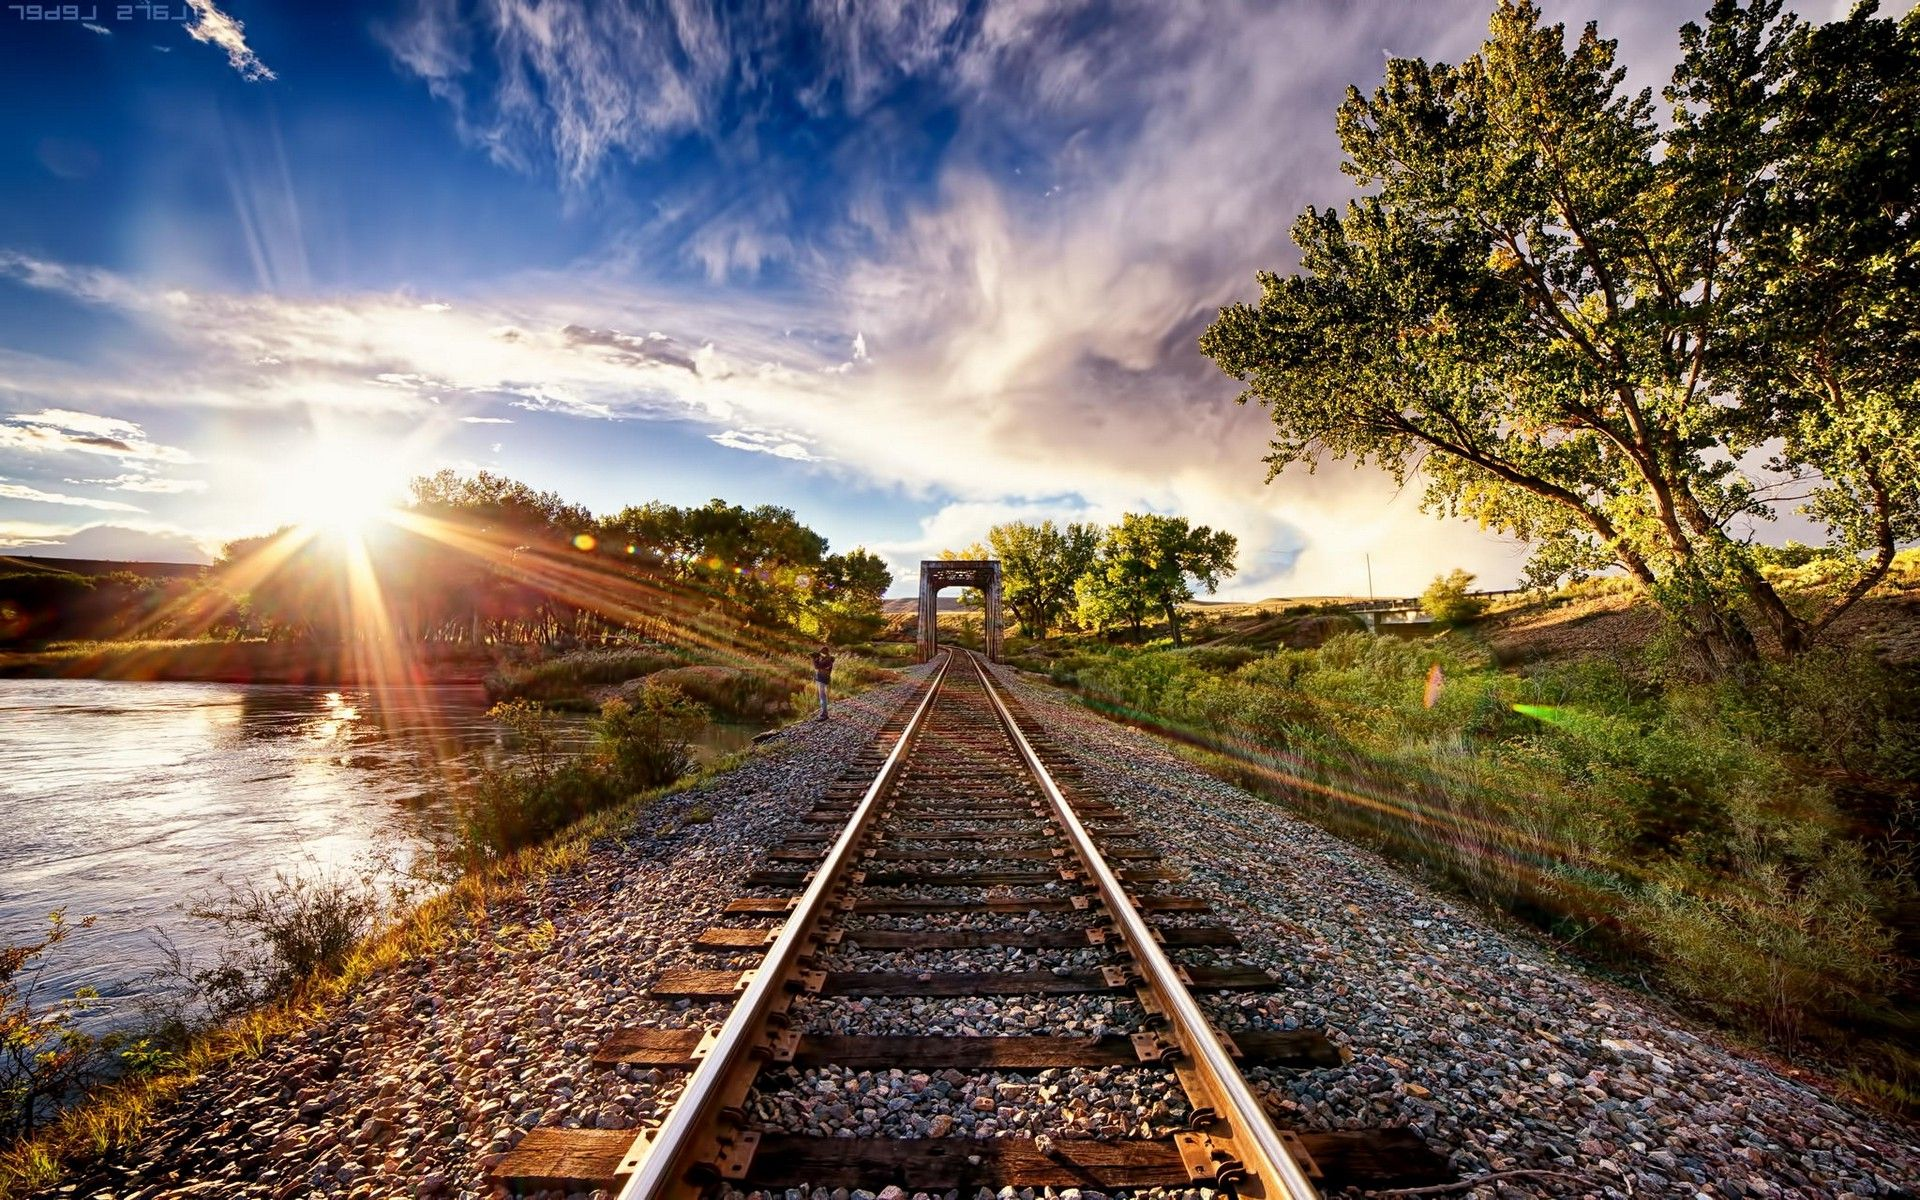 Nature Landscape Sunset Tracks Train Sun Rays Trees Clouds River Hdr Wallpapers Hd Desktop And Mobile Backgrounds Landscape Nature Train Tracks